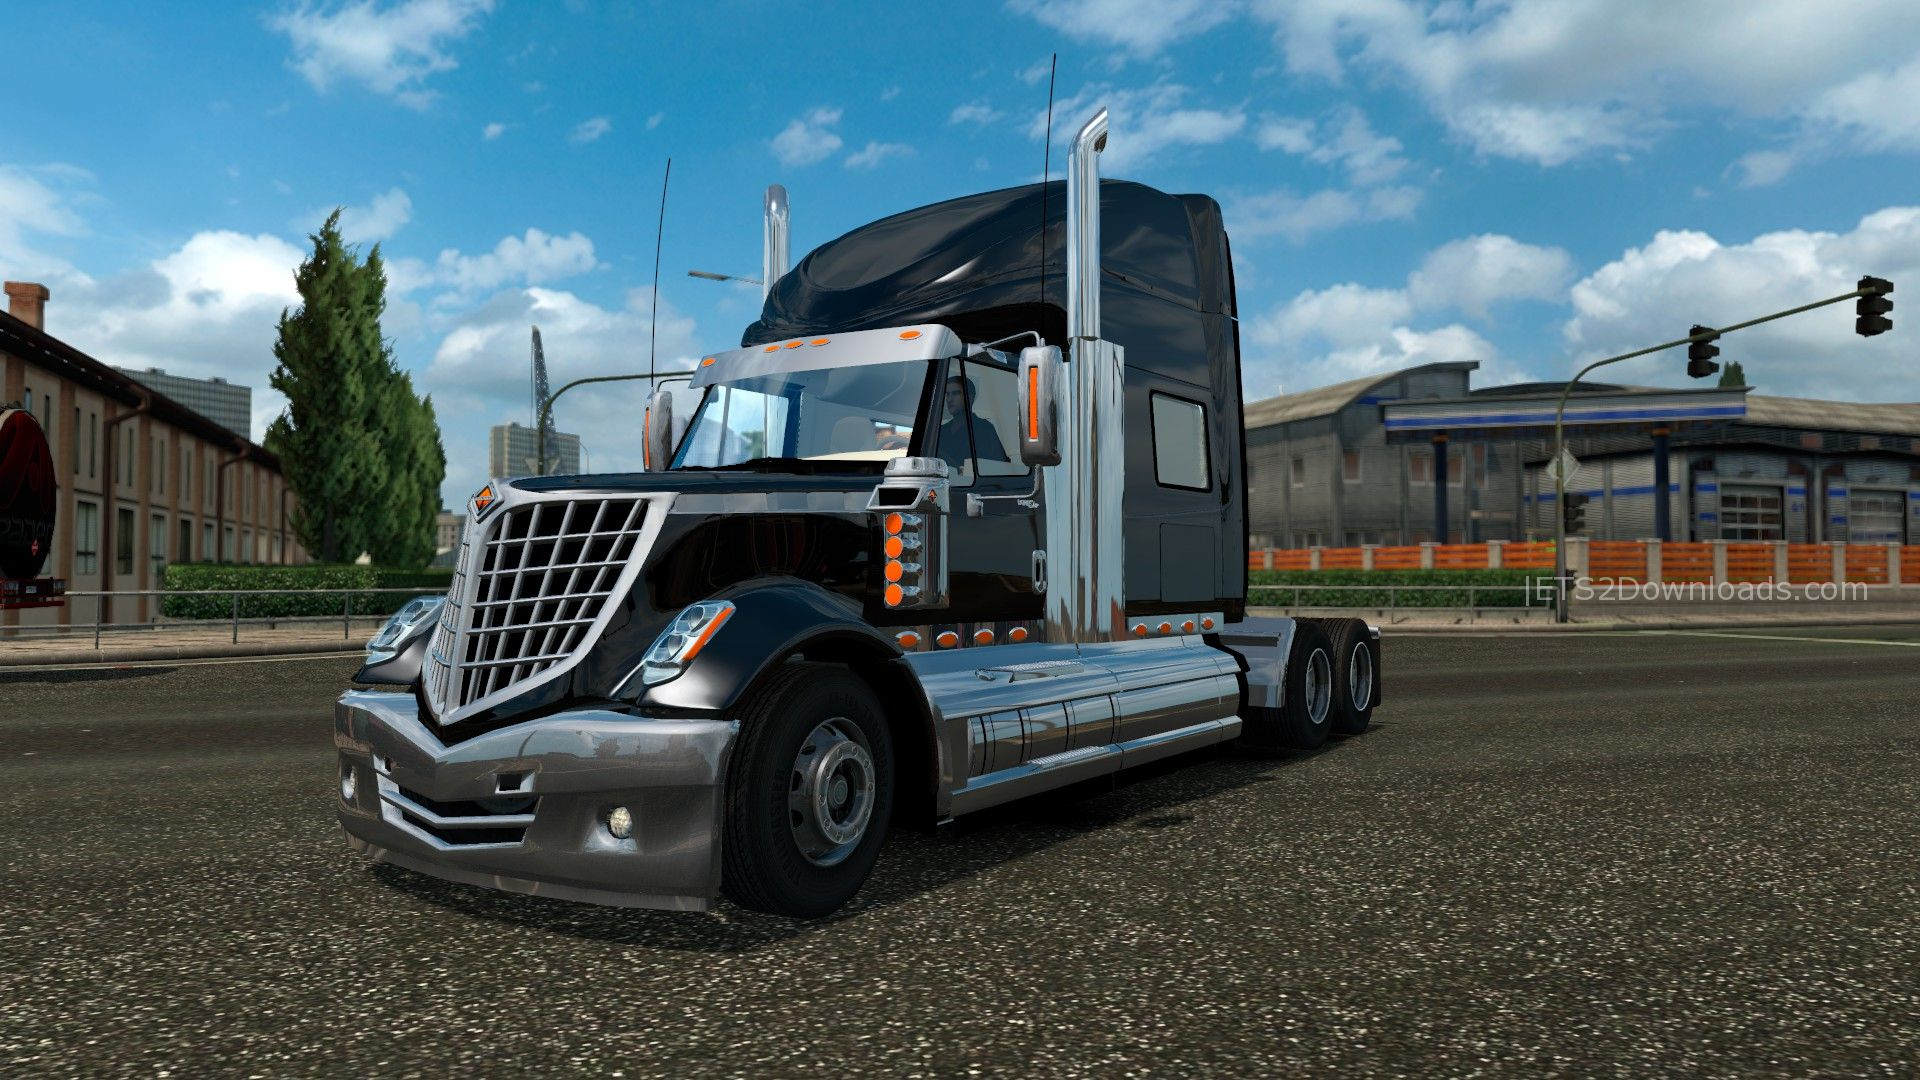 Volvo Truck Parts >> International Lonestar - ETS 2 Mods | ETS2Downloads